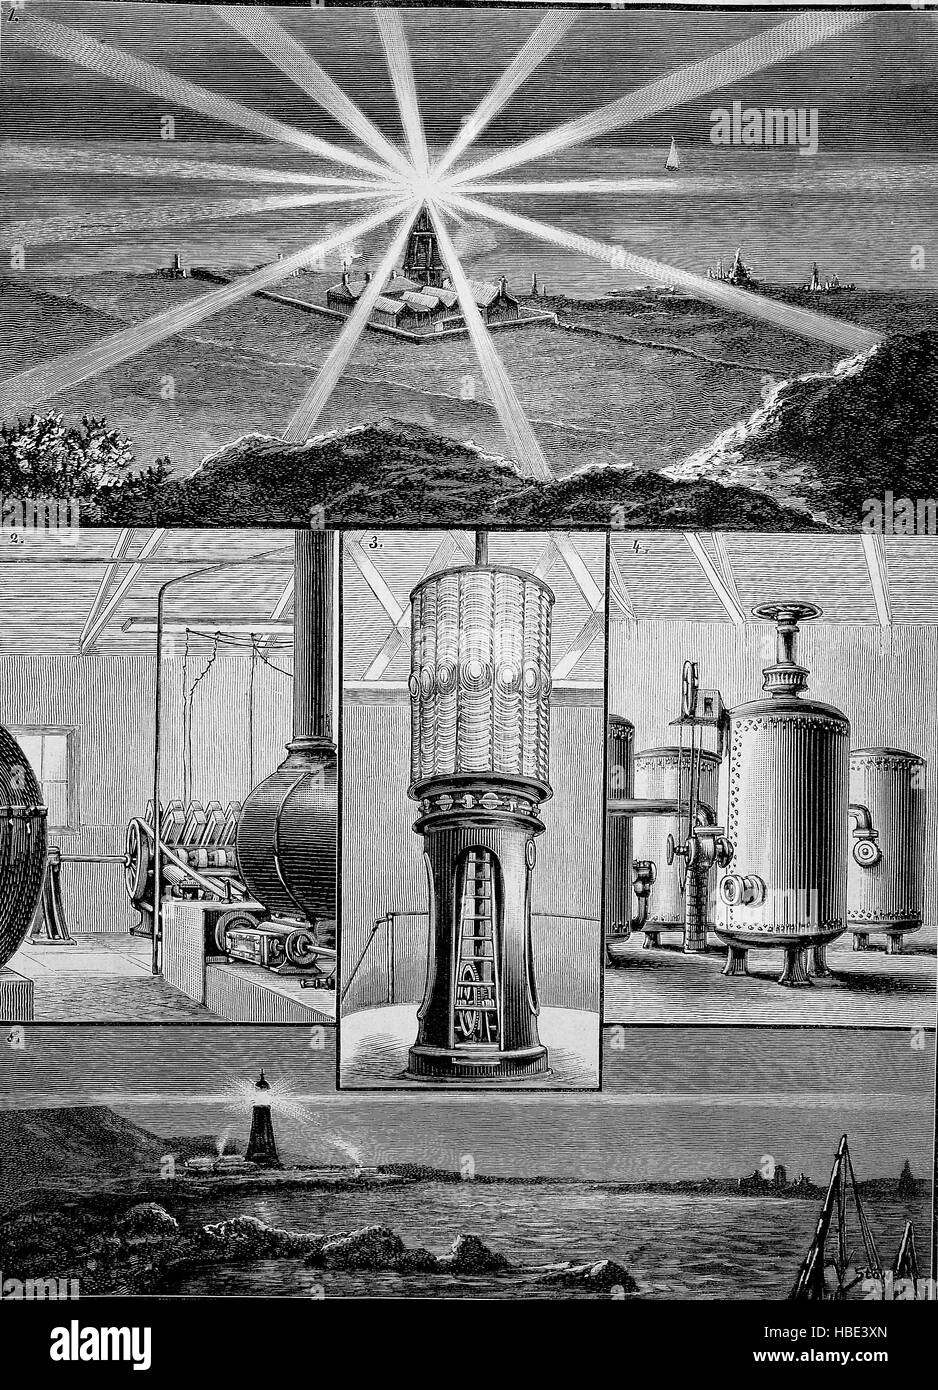 The new electric lighthouse on the island of Wight, England, illustration, woodcut from 1880 - Stock Image